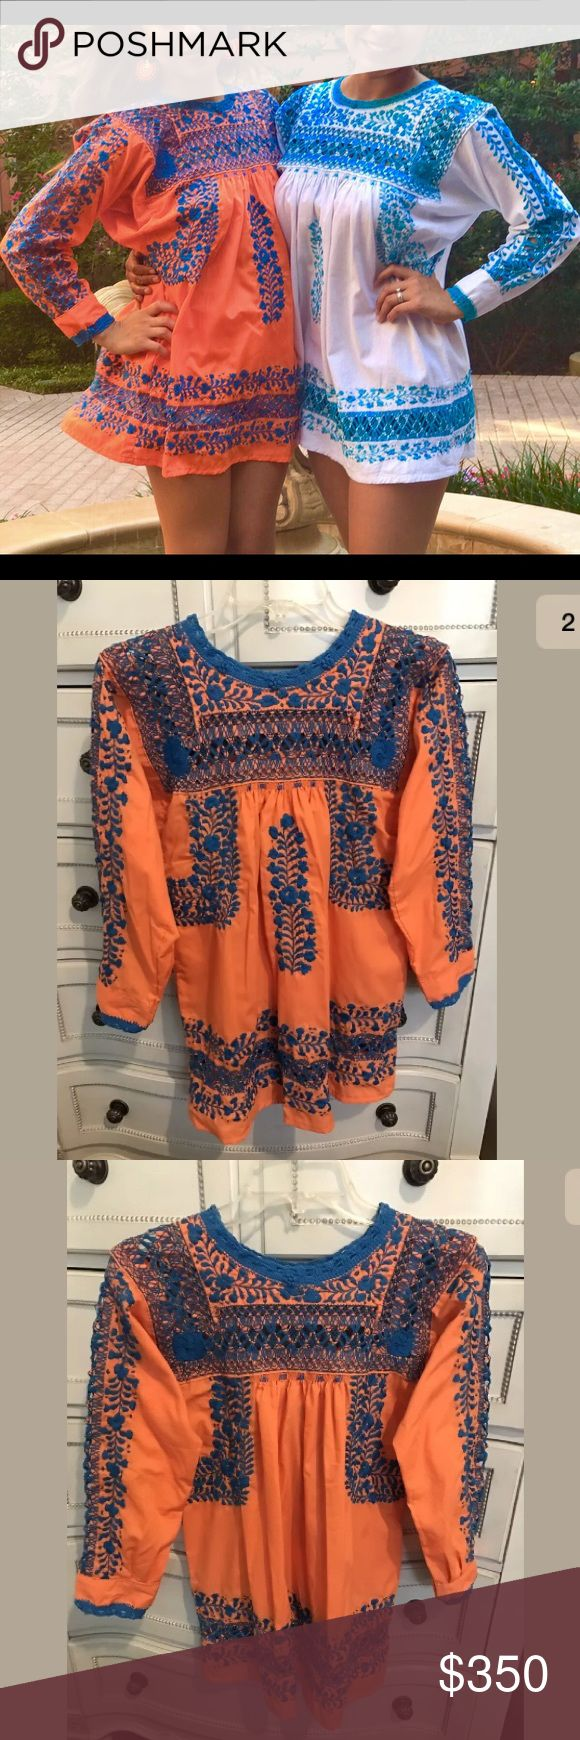 Mexican Blouse Mexican Embroidered Blouse made in Mexico. Tops Blouses